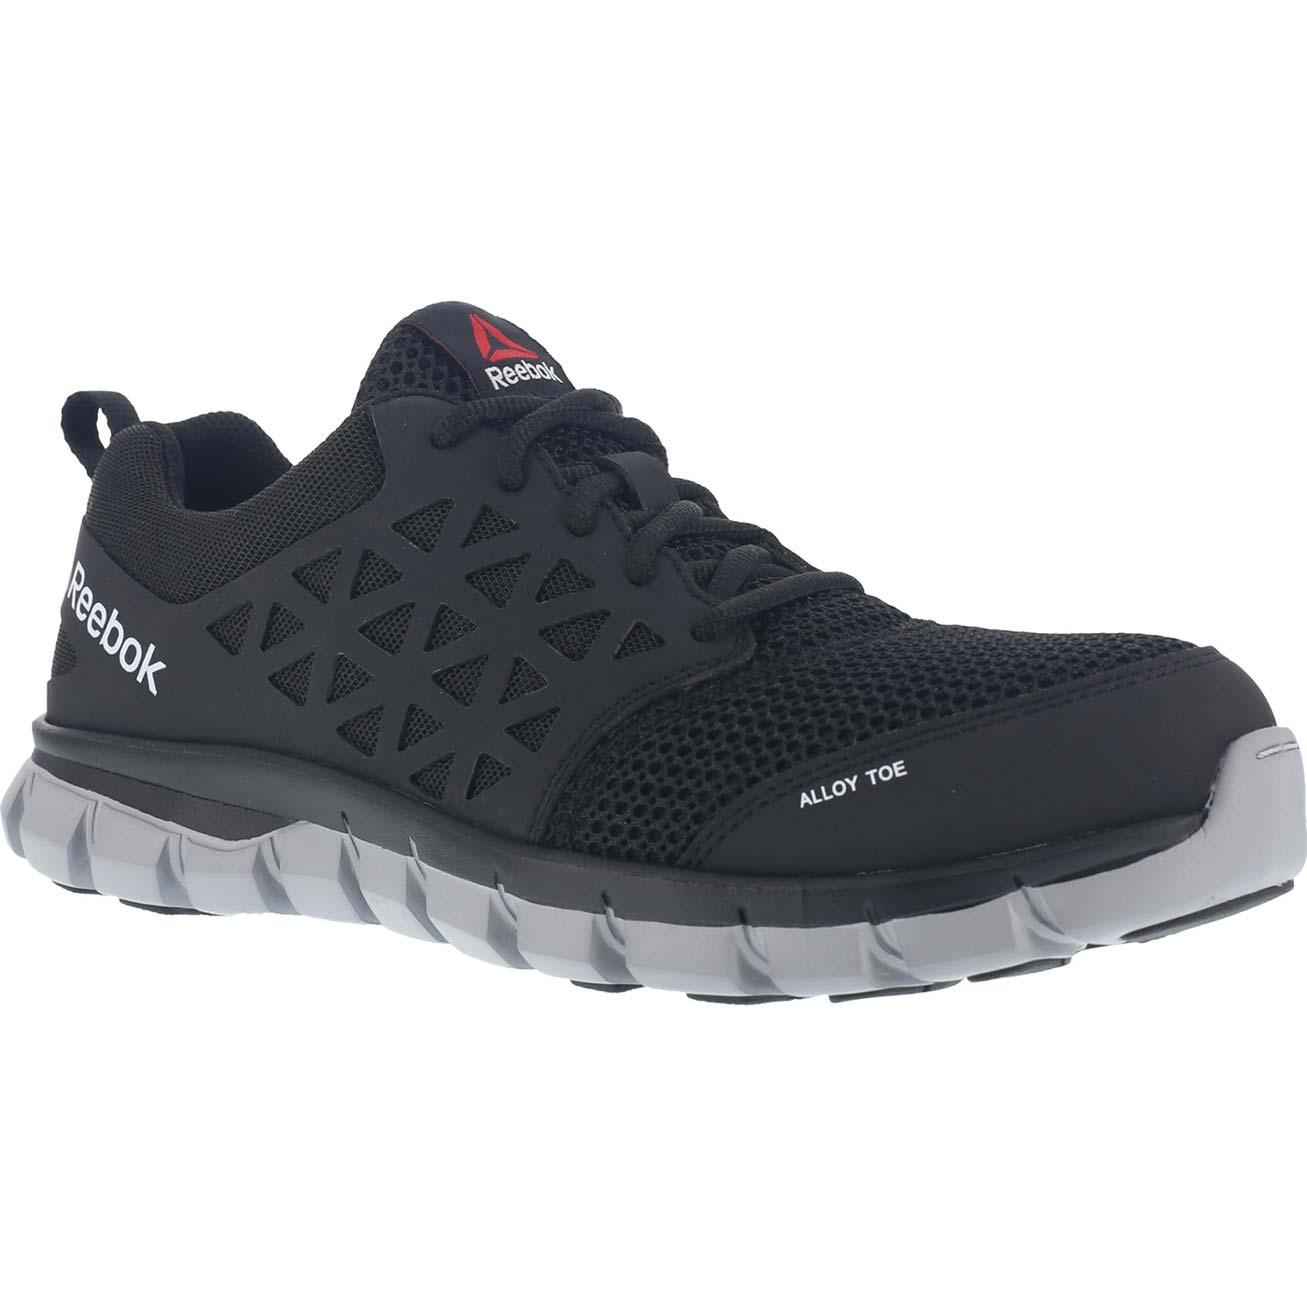 Reebok Sublite Cushion Work Men s Alloy Toe Electrical Hazard Work Athletic  ShoeReebok Sublite Cushion Work Men s Alloy Toe Electrical Hazard Work  Athletic ... 3fdaf4fe4